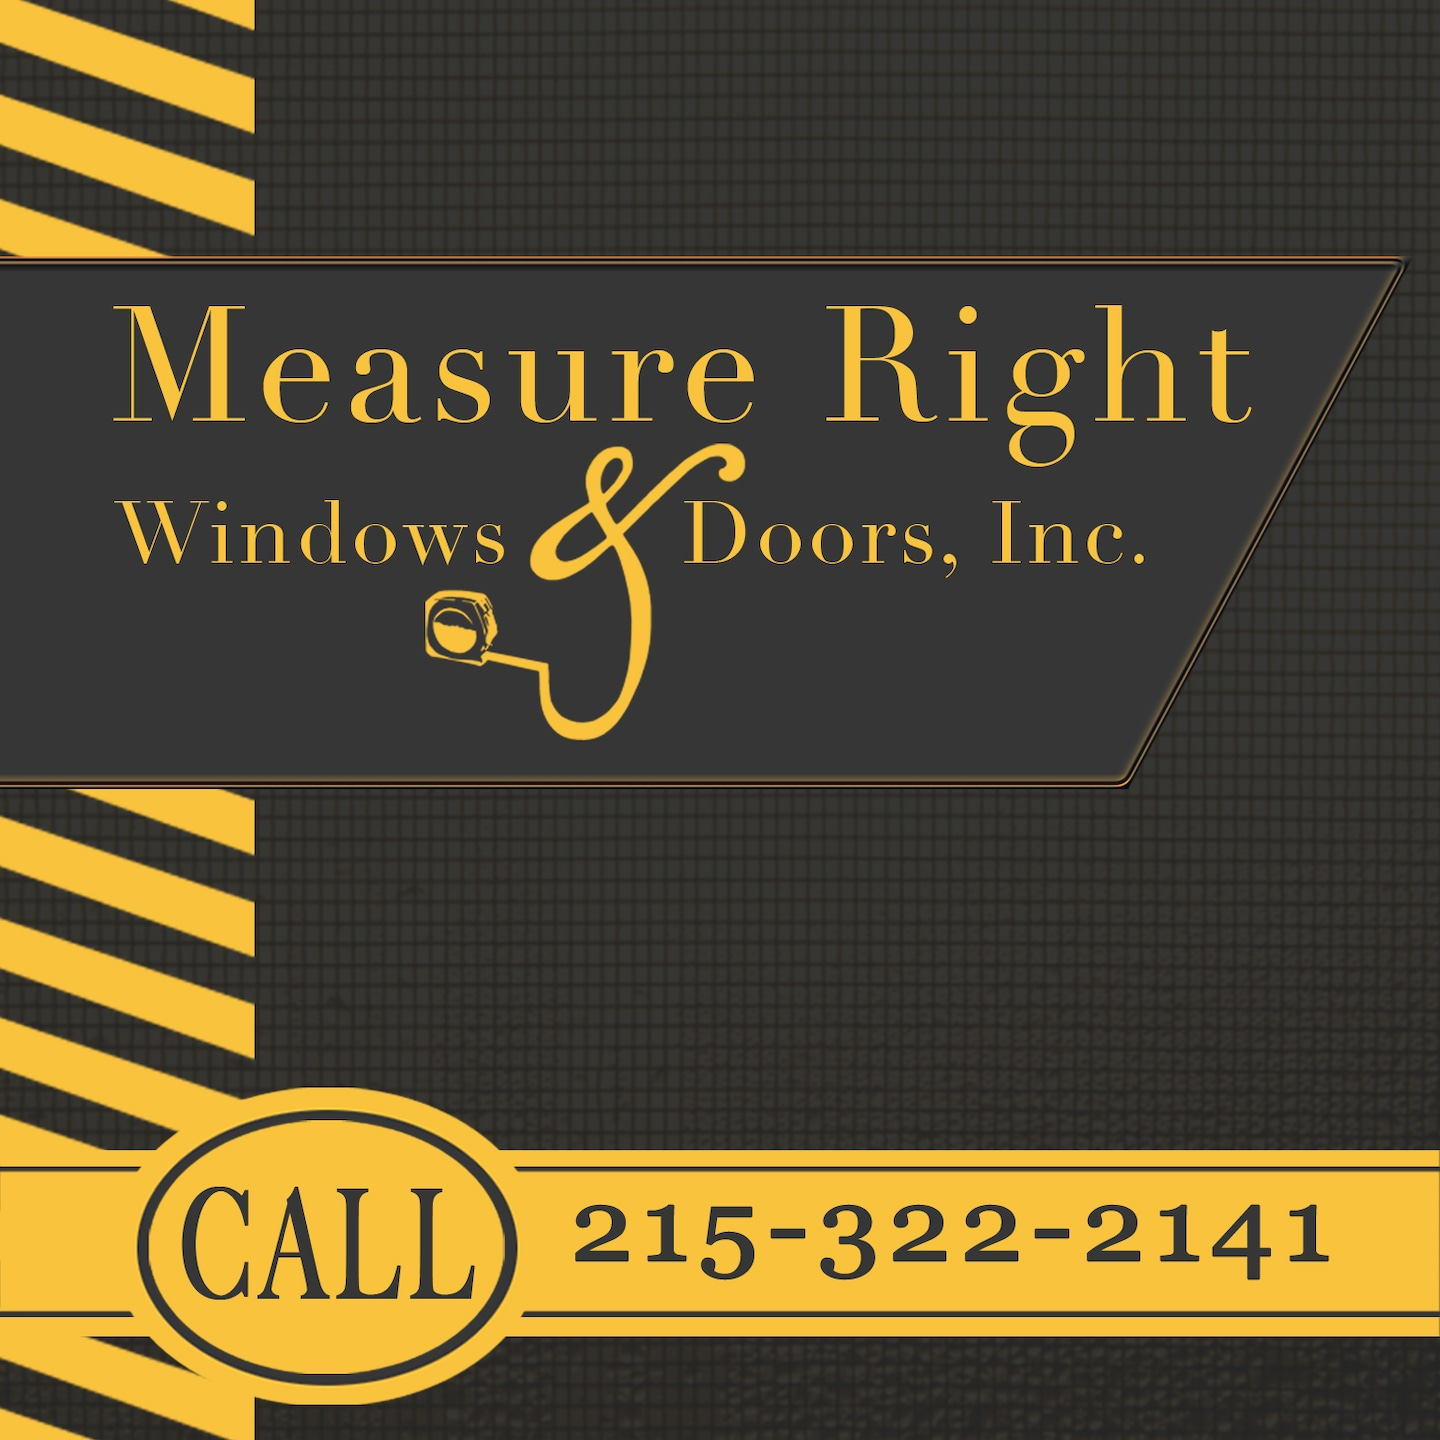 Measure Right Windows & Doors